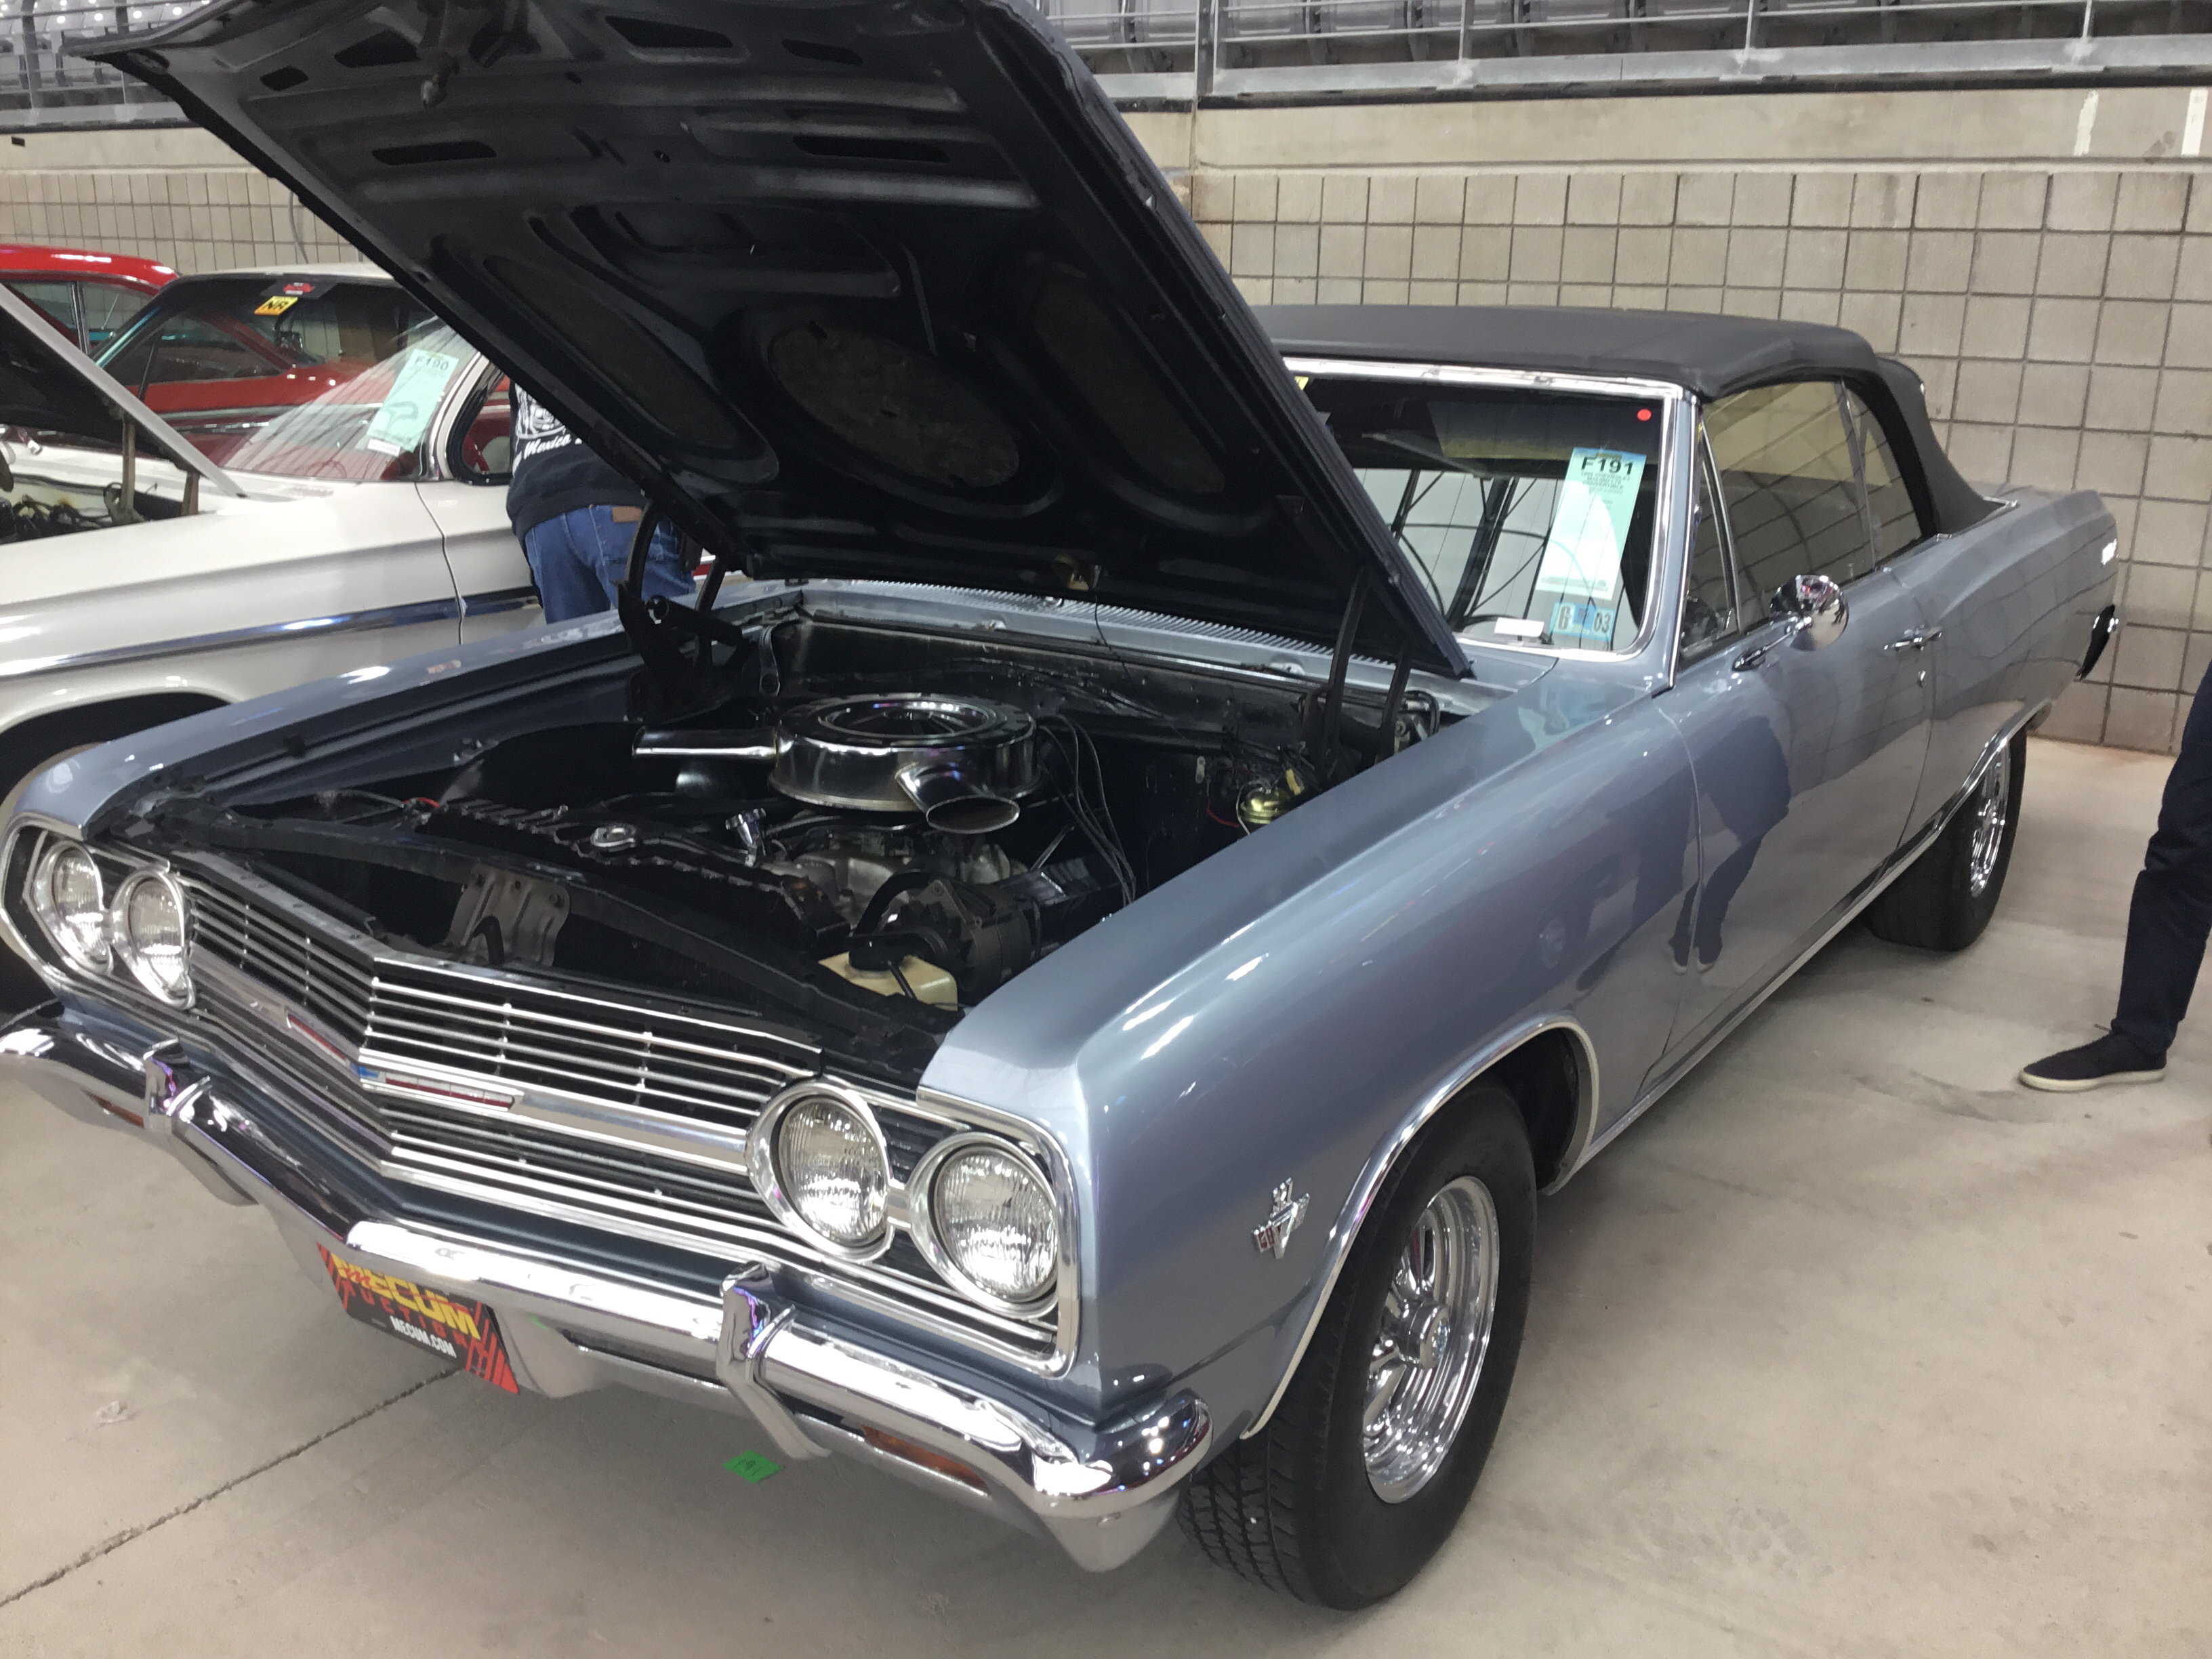 1965 Chevrolet Chevelle 300 Values | Hagerty Valuation Tool®